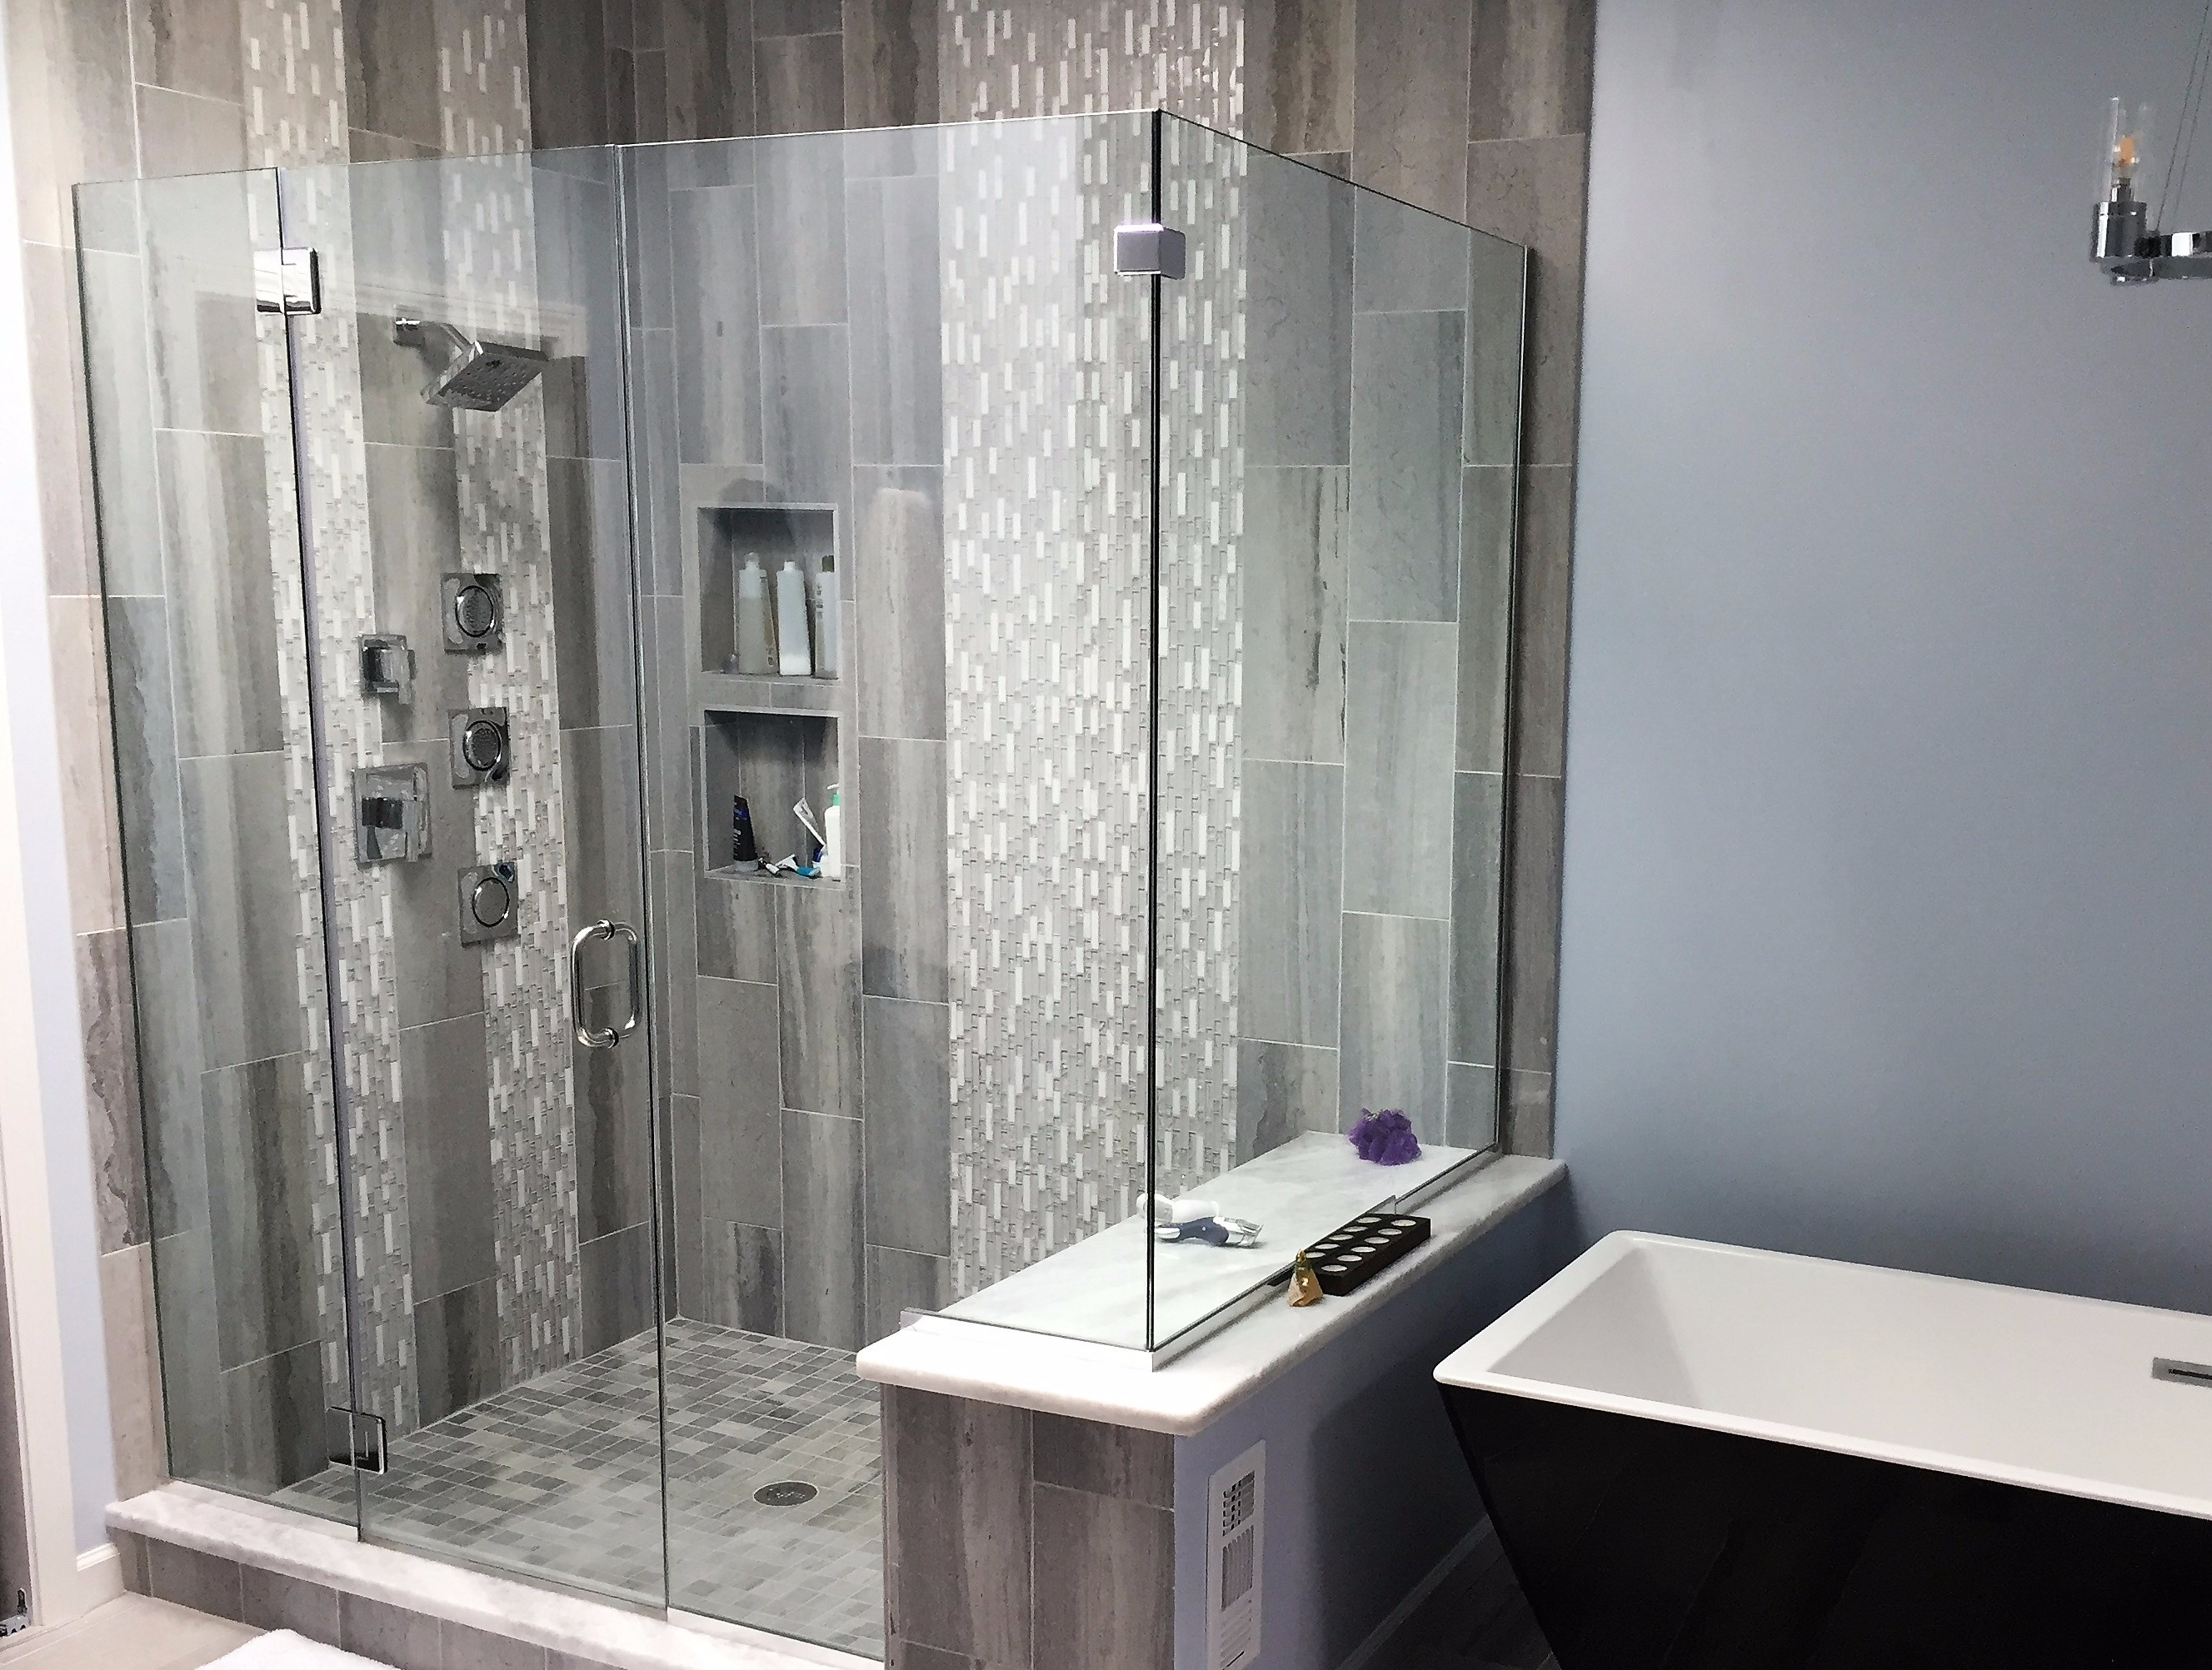 Transform Your Bathroom With a Remodel